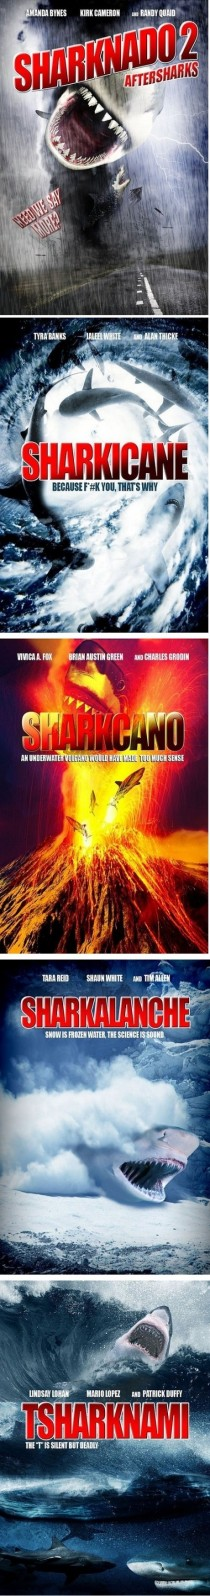 Possible sequels to Sharknado